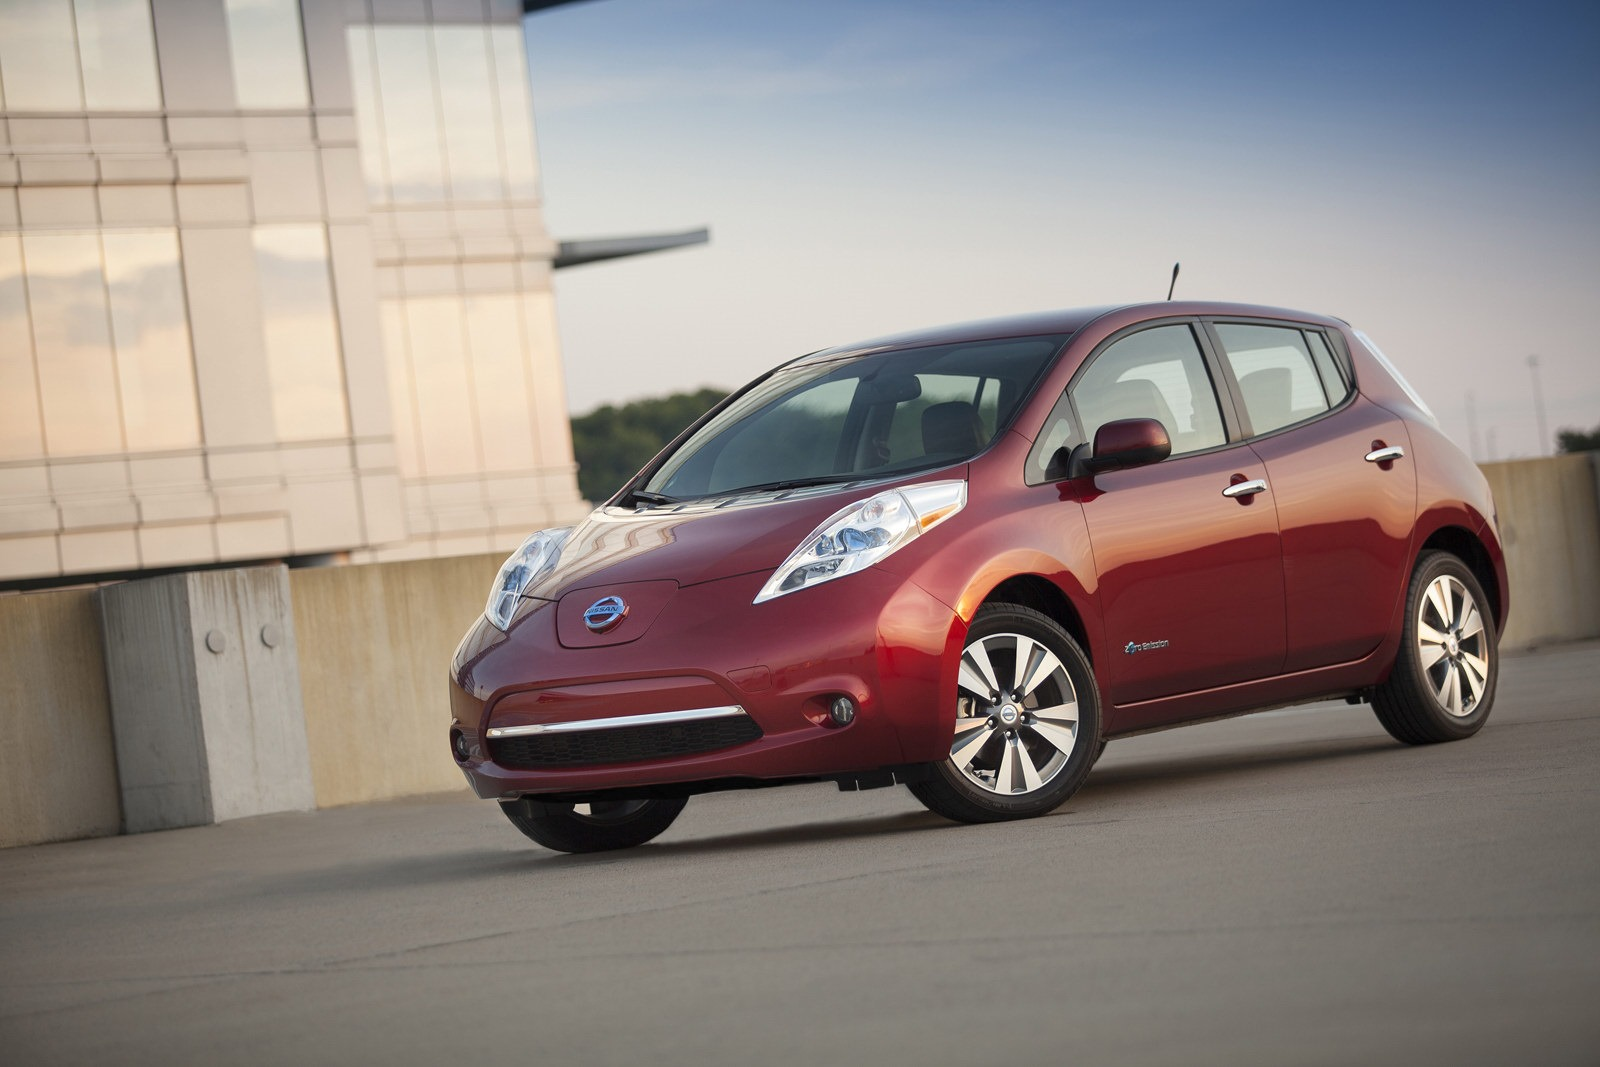 nissan leaf photos prices reviews specs the car html. Black Bedroom Furniture Sets. Home Design Ideas